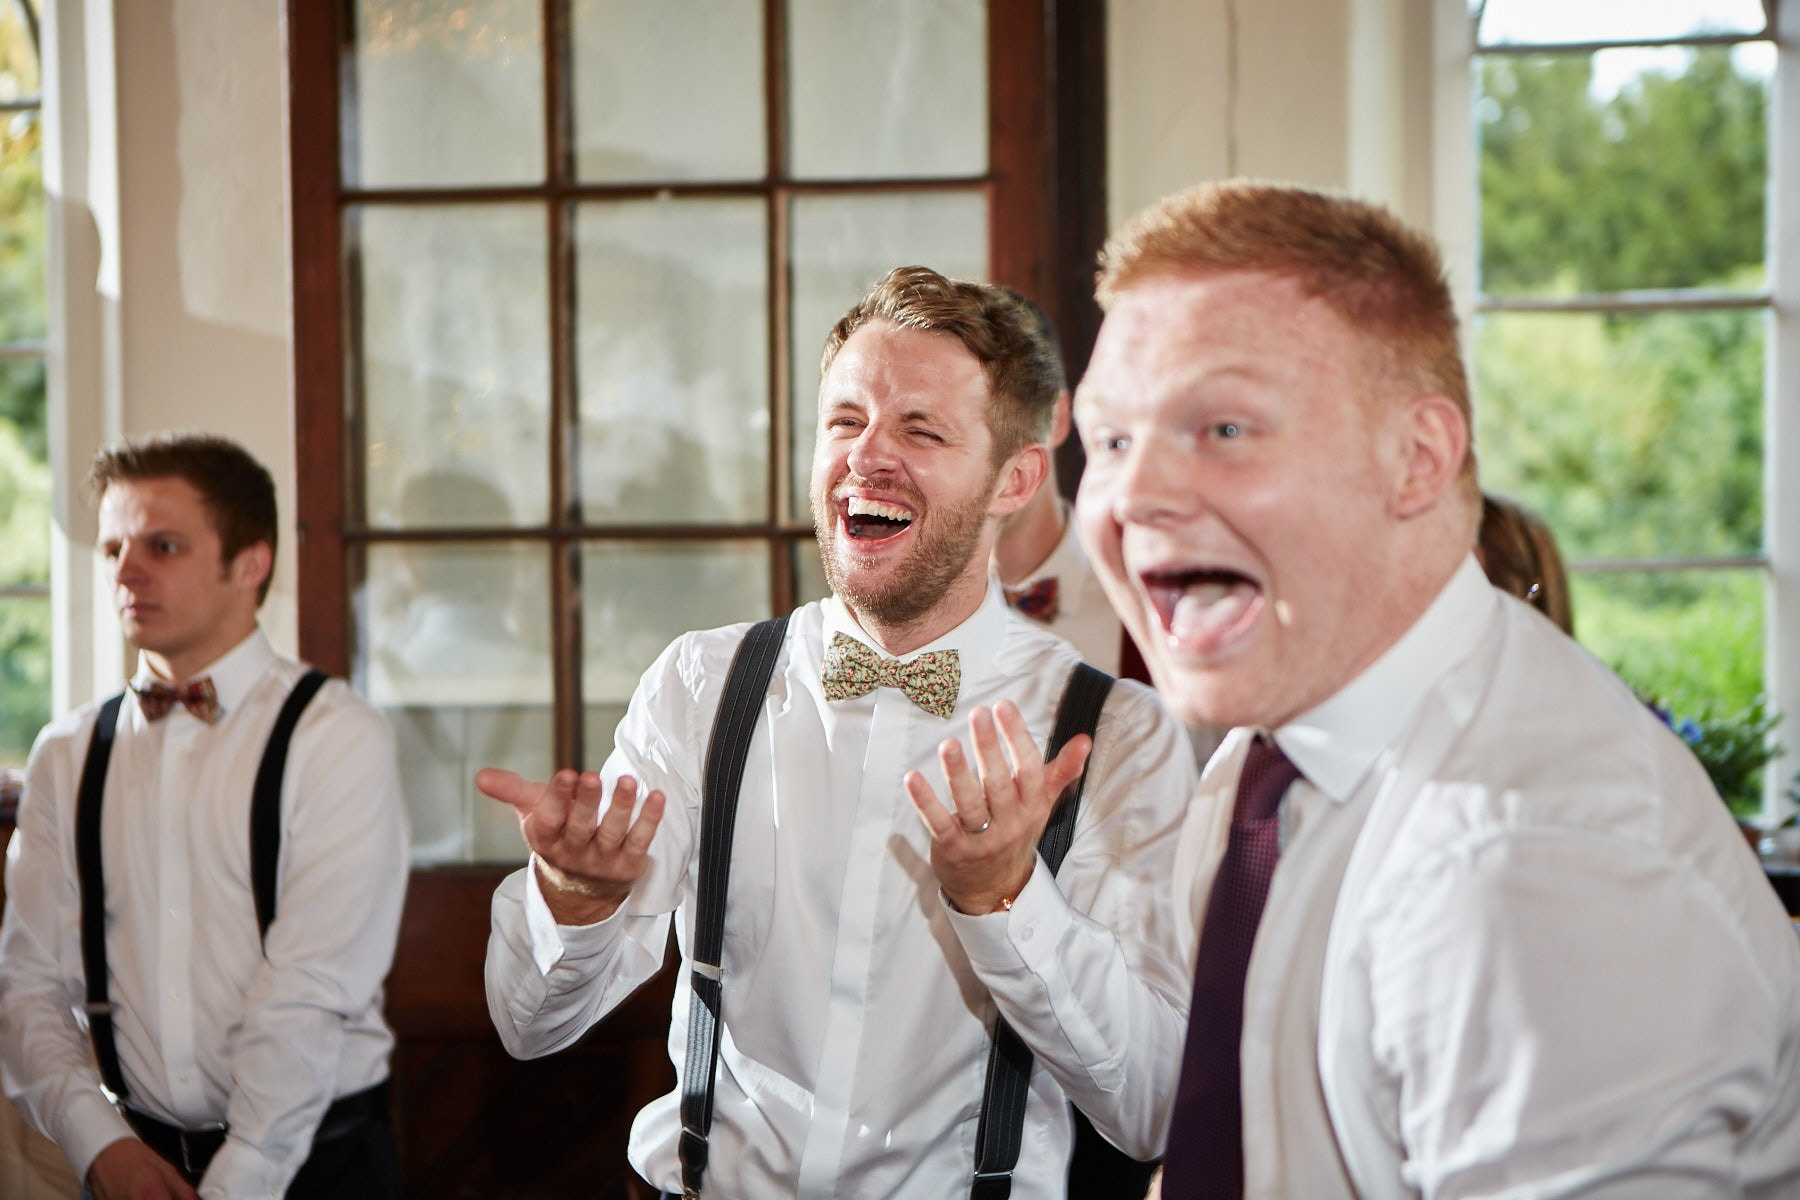 A groom and his friends laugh during his wedding reception.